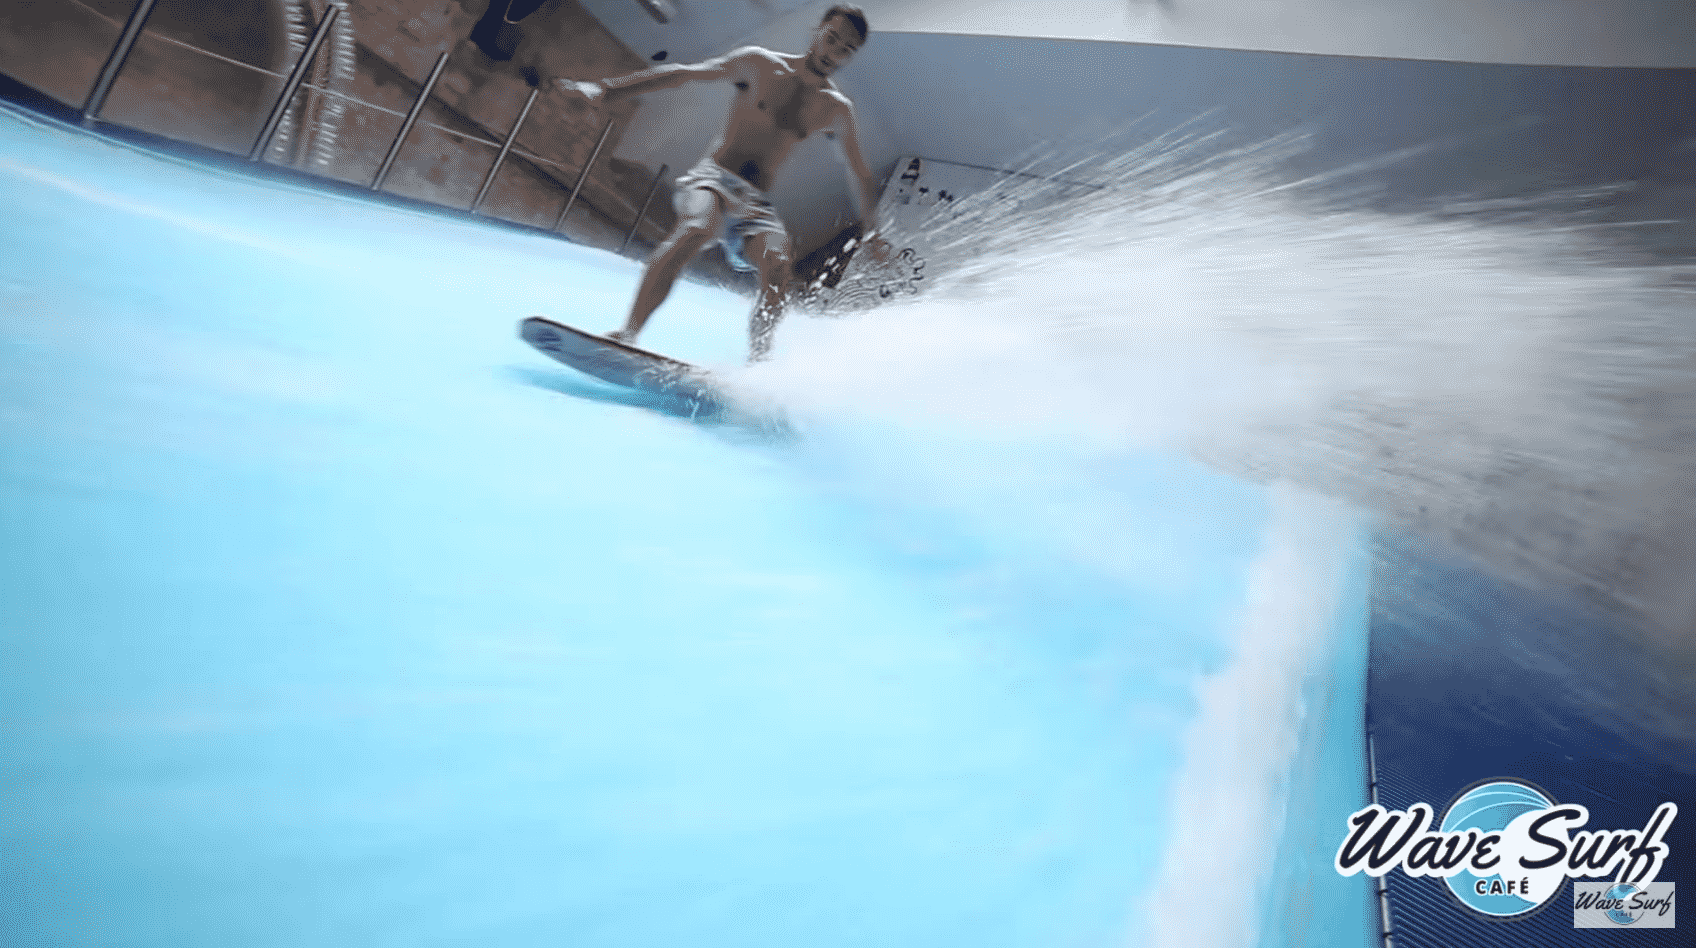 bordeaux-piscine-wave-surf-cafe